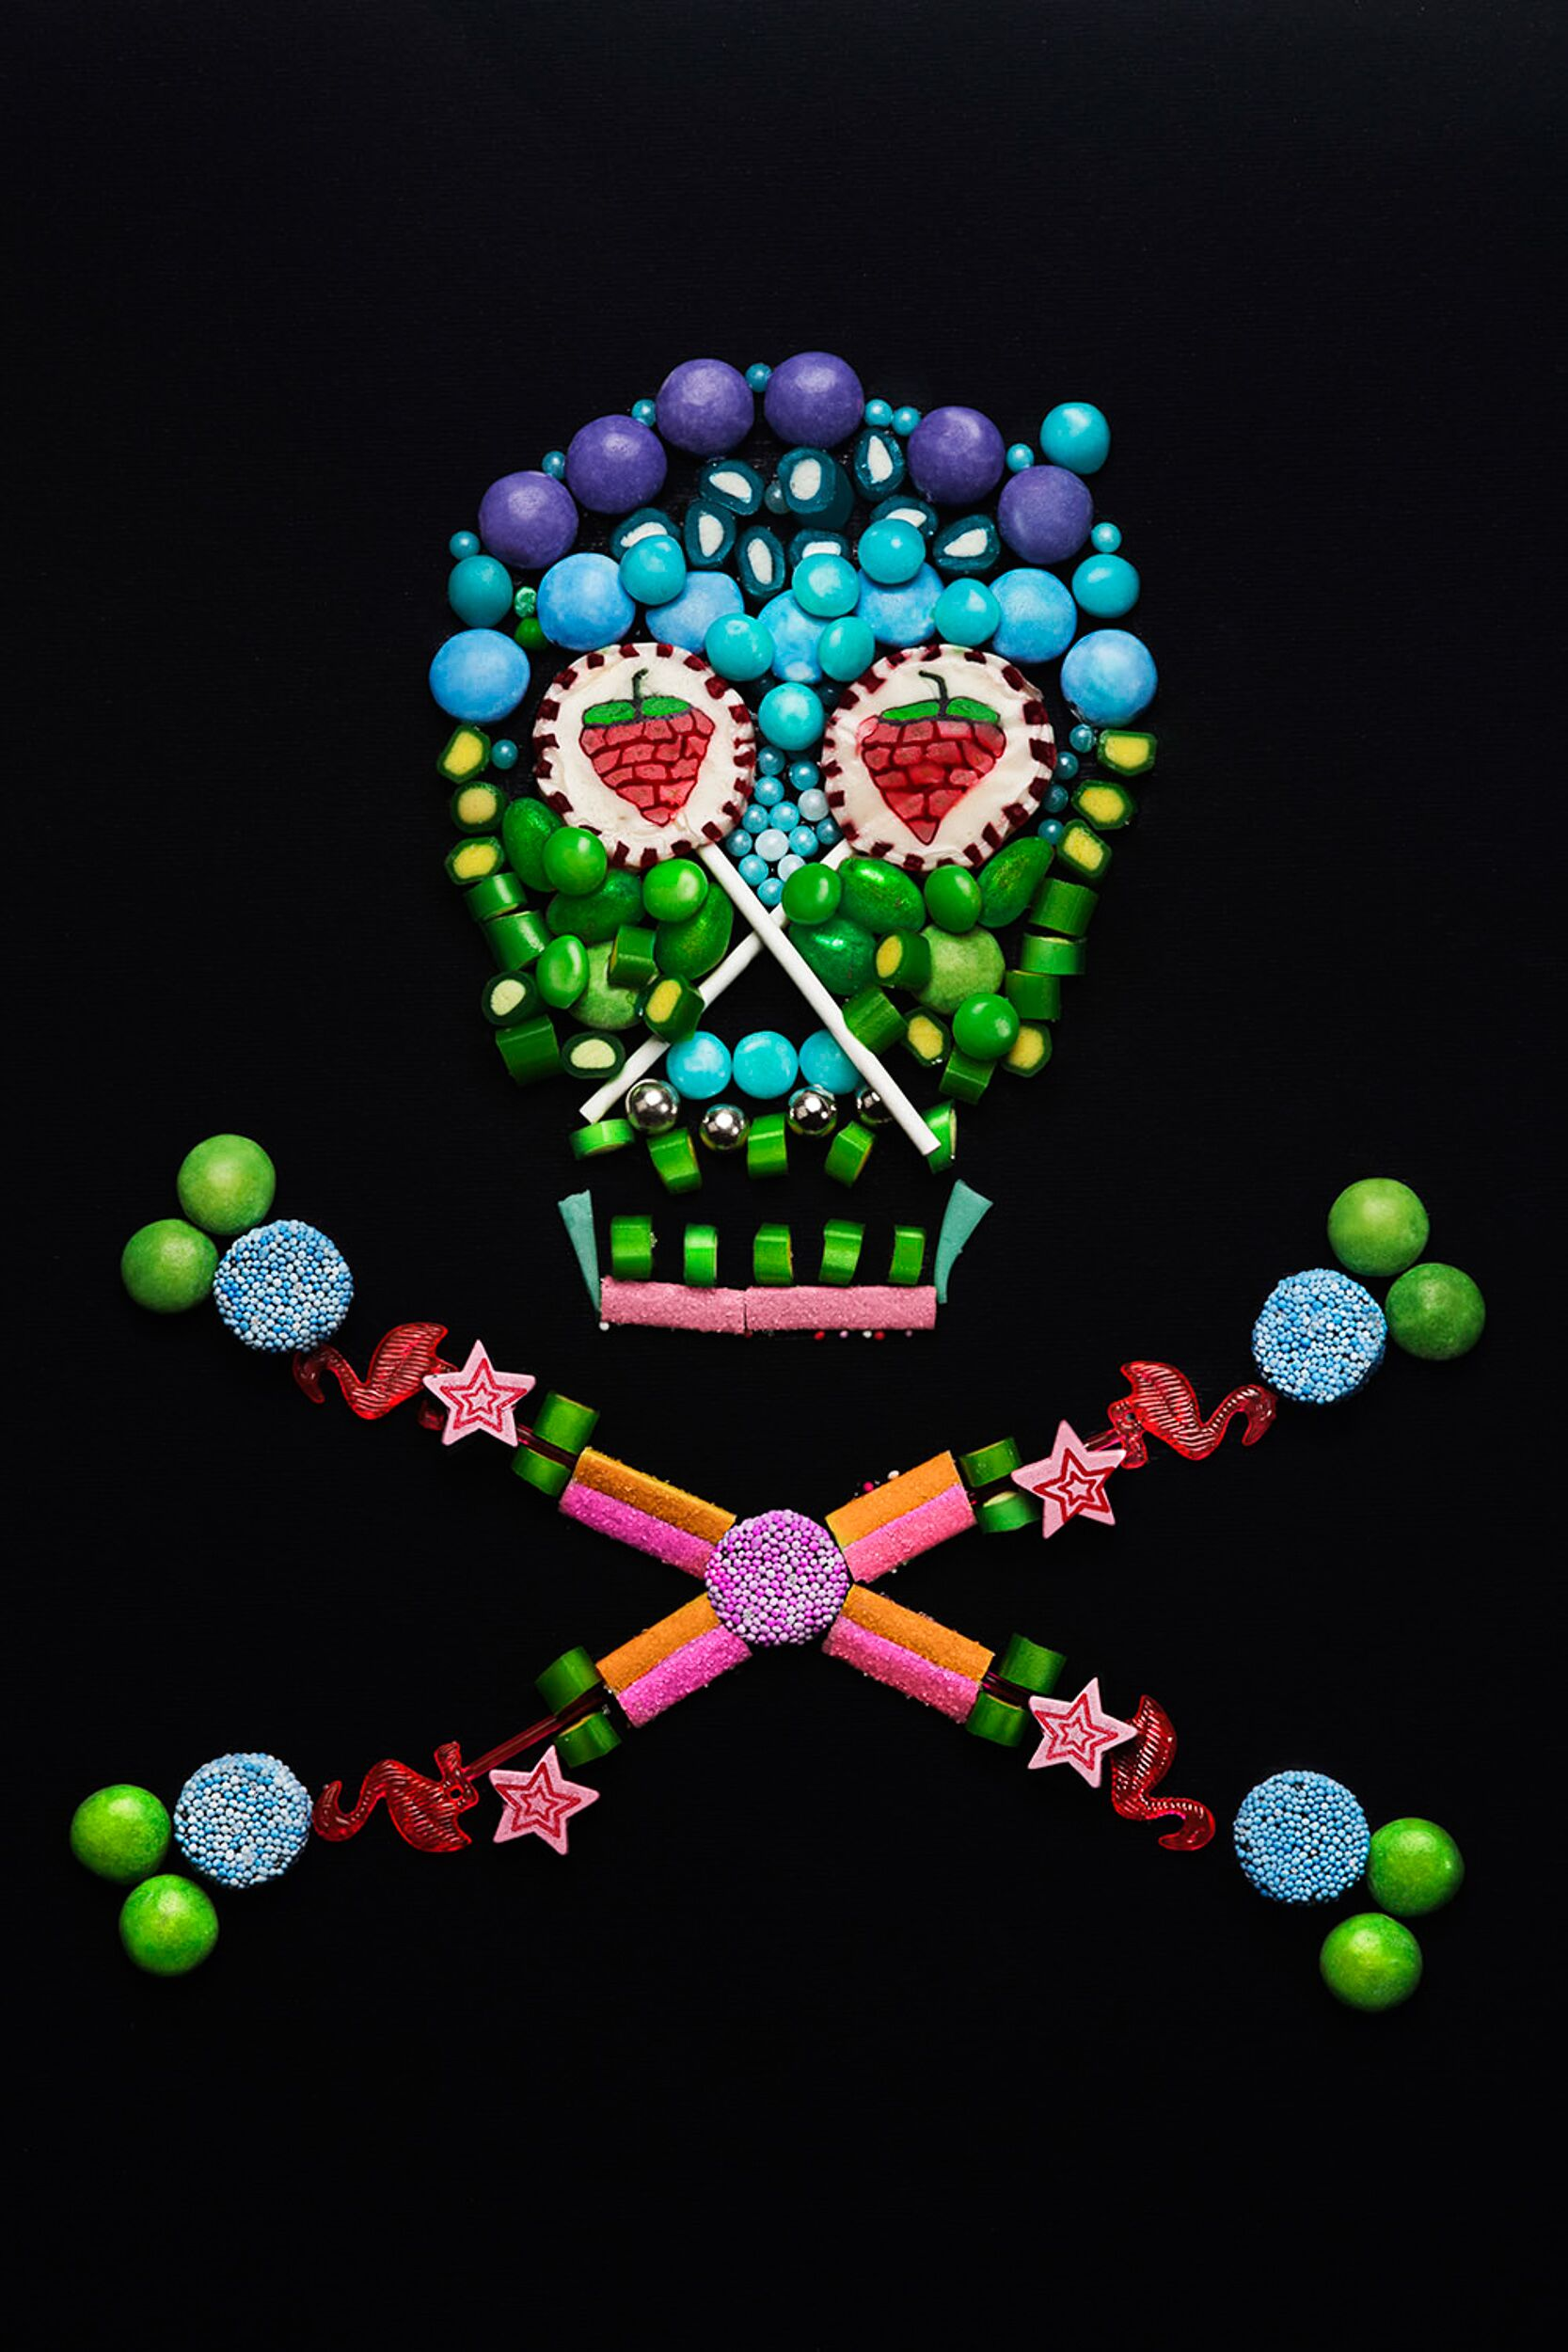 Crossbones Madeup of Different Colorful Candy